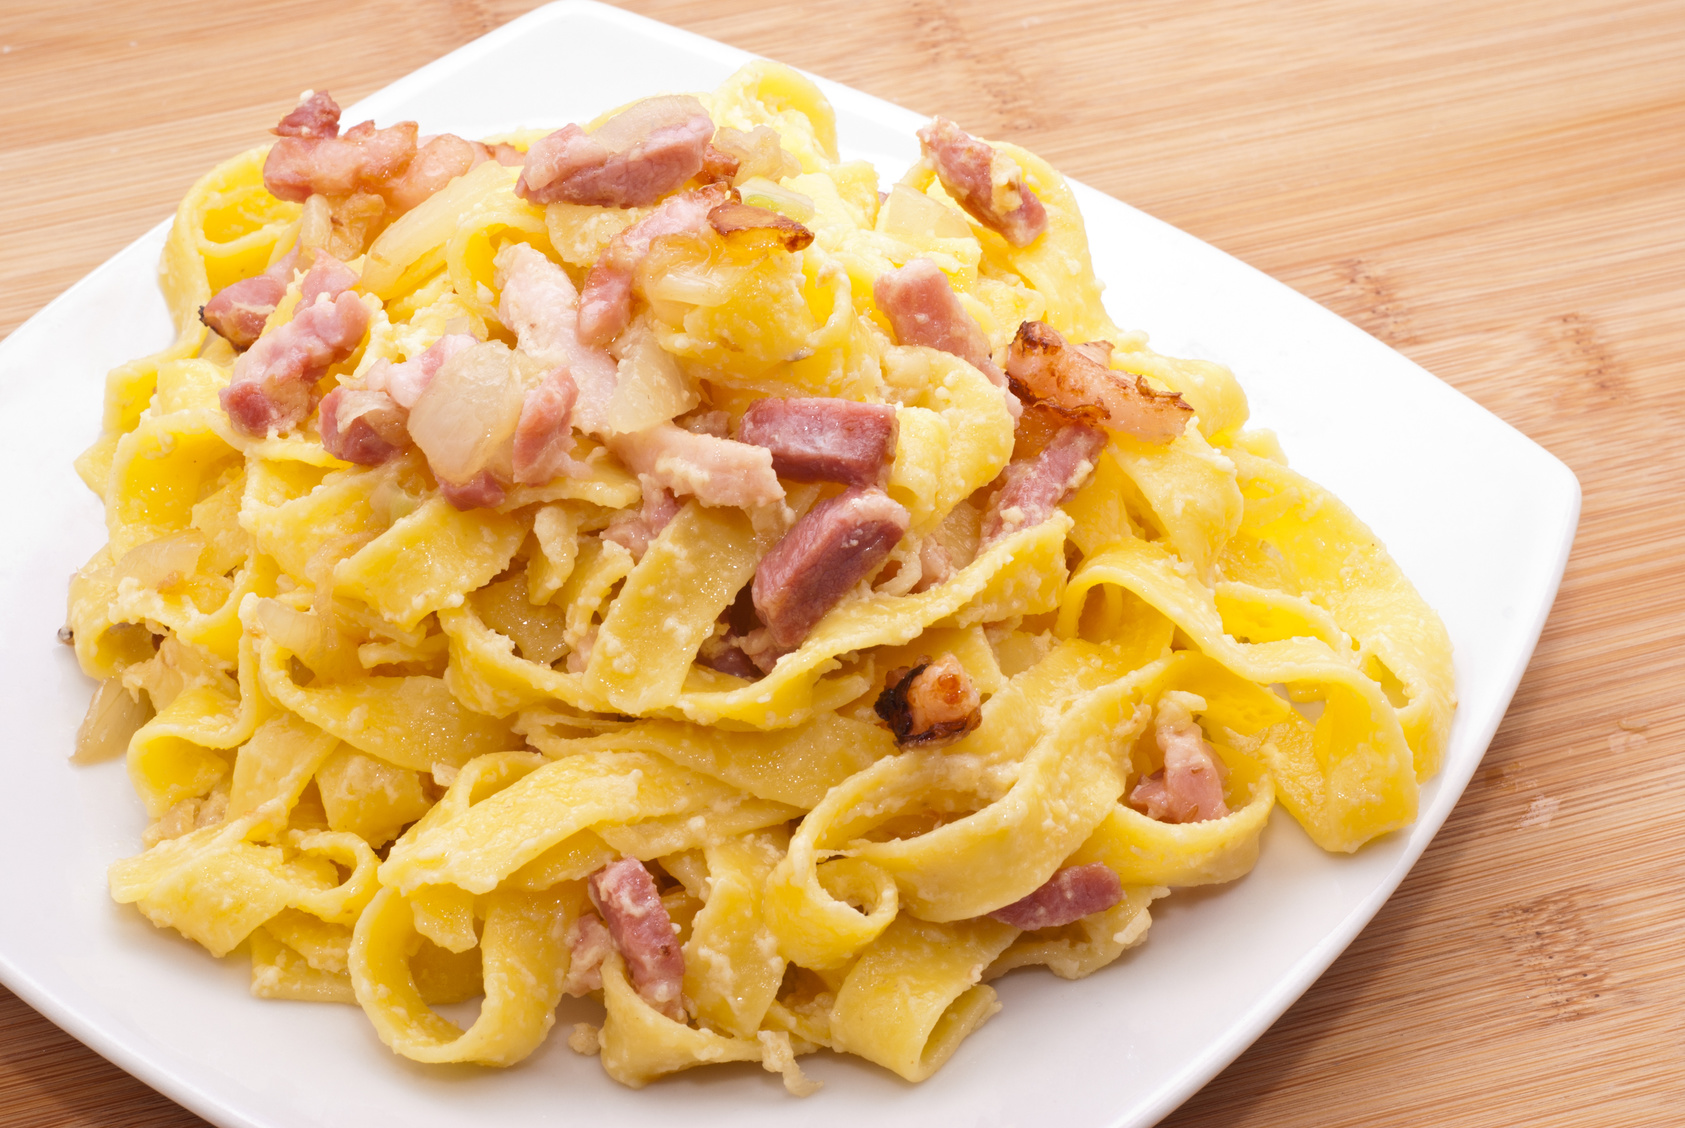 pasta Carbonara with eggs bacon and parmesan on wooden board